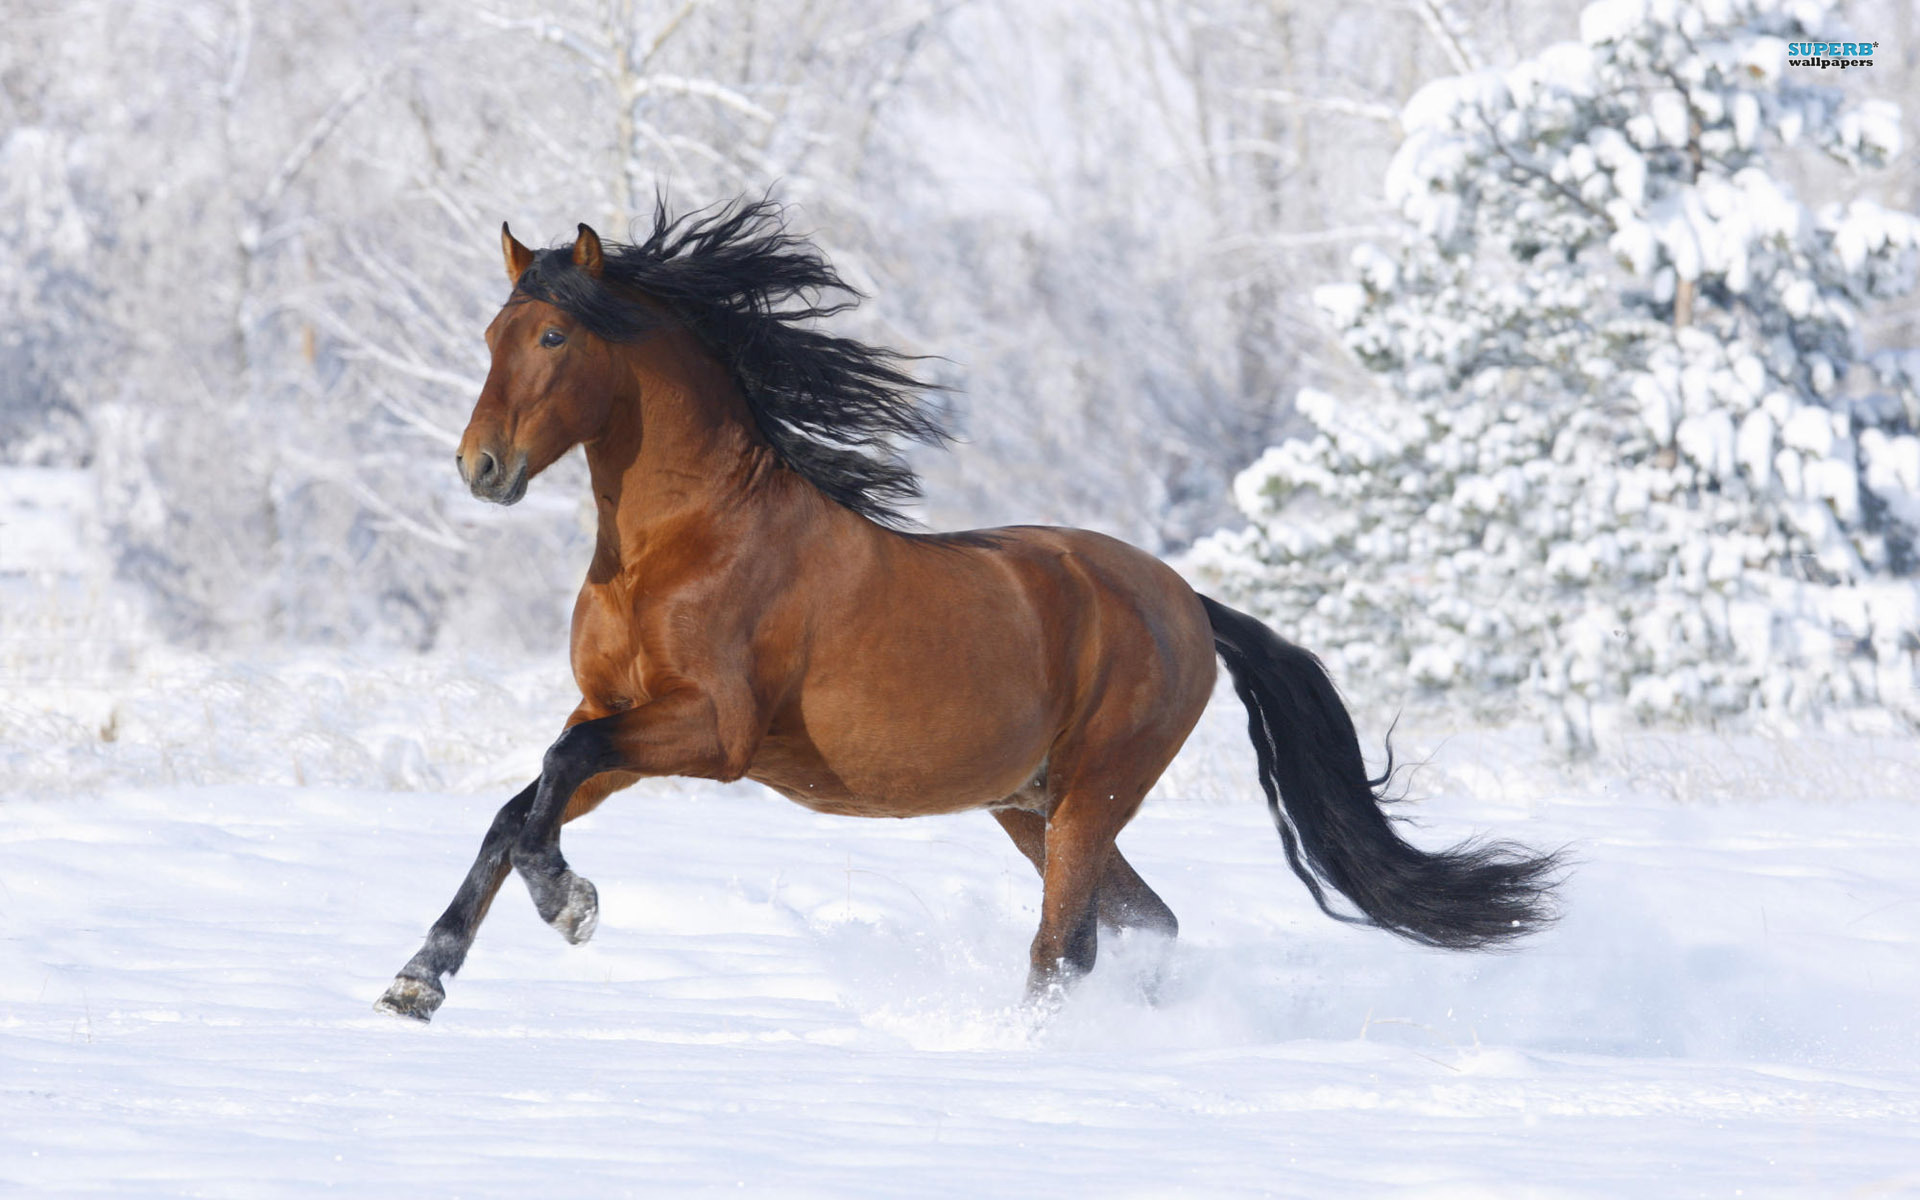 Horse Animal Desktop Wallpaper with Snow Background